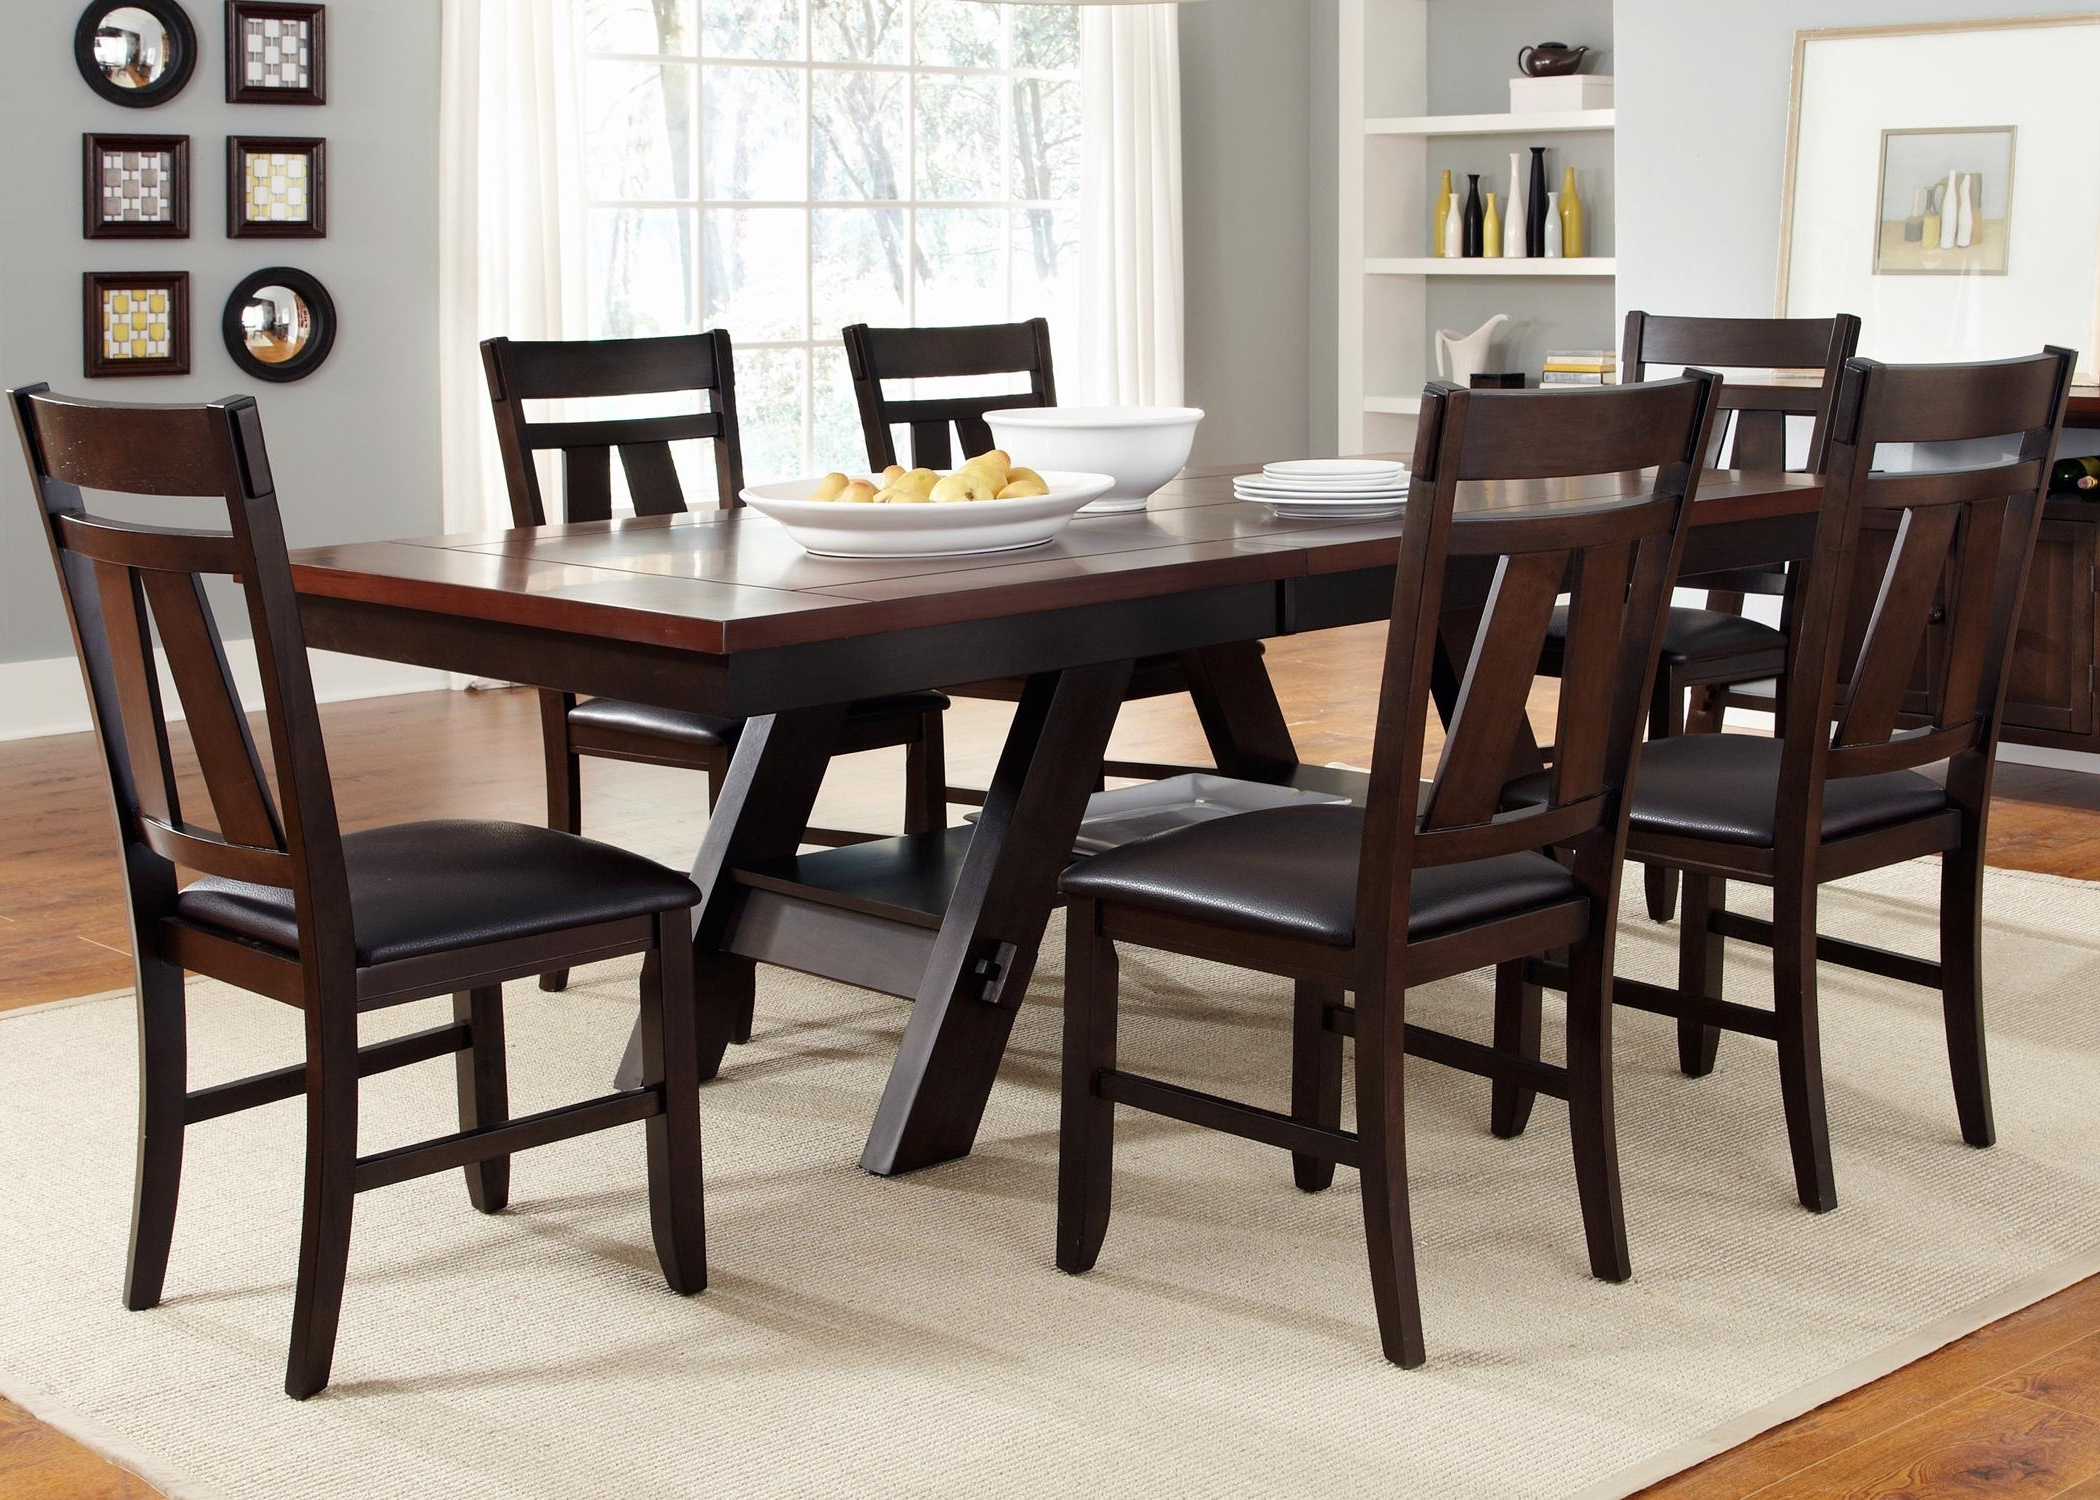 Parquet 7 Piece Dining Sets Throughout Favorite 7 Piece Rectangular Trestle Table And Splat Back Chairs Set (Gallery 13 of 25)